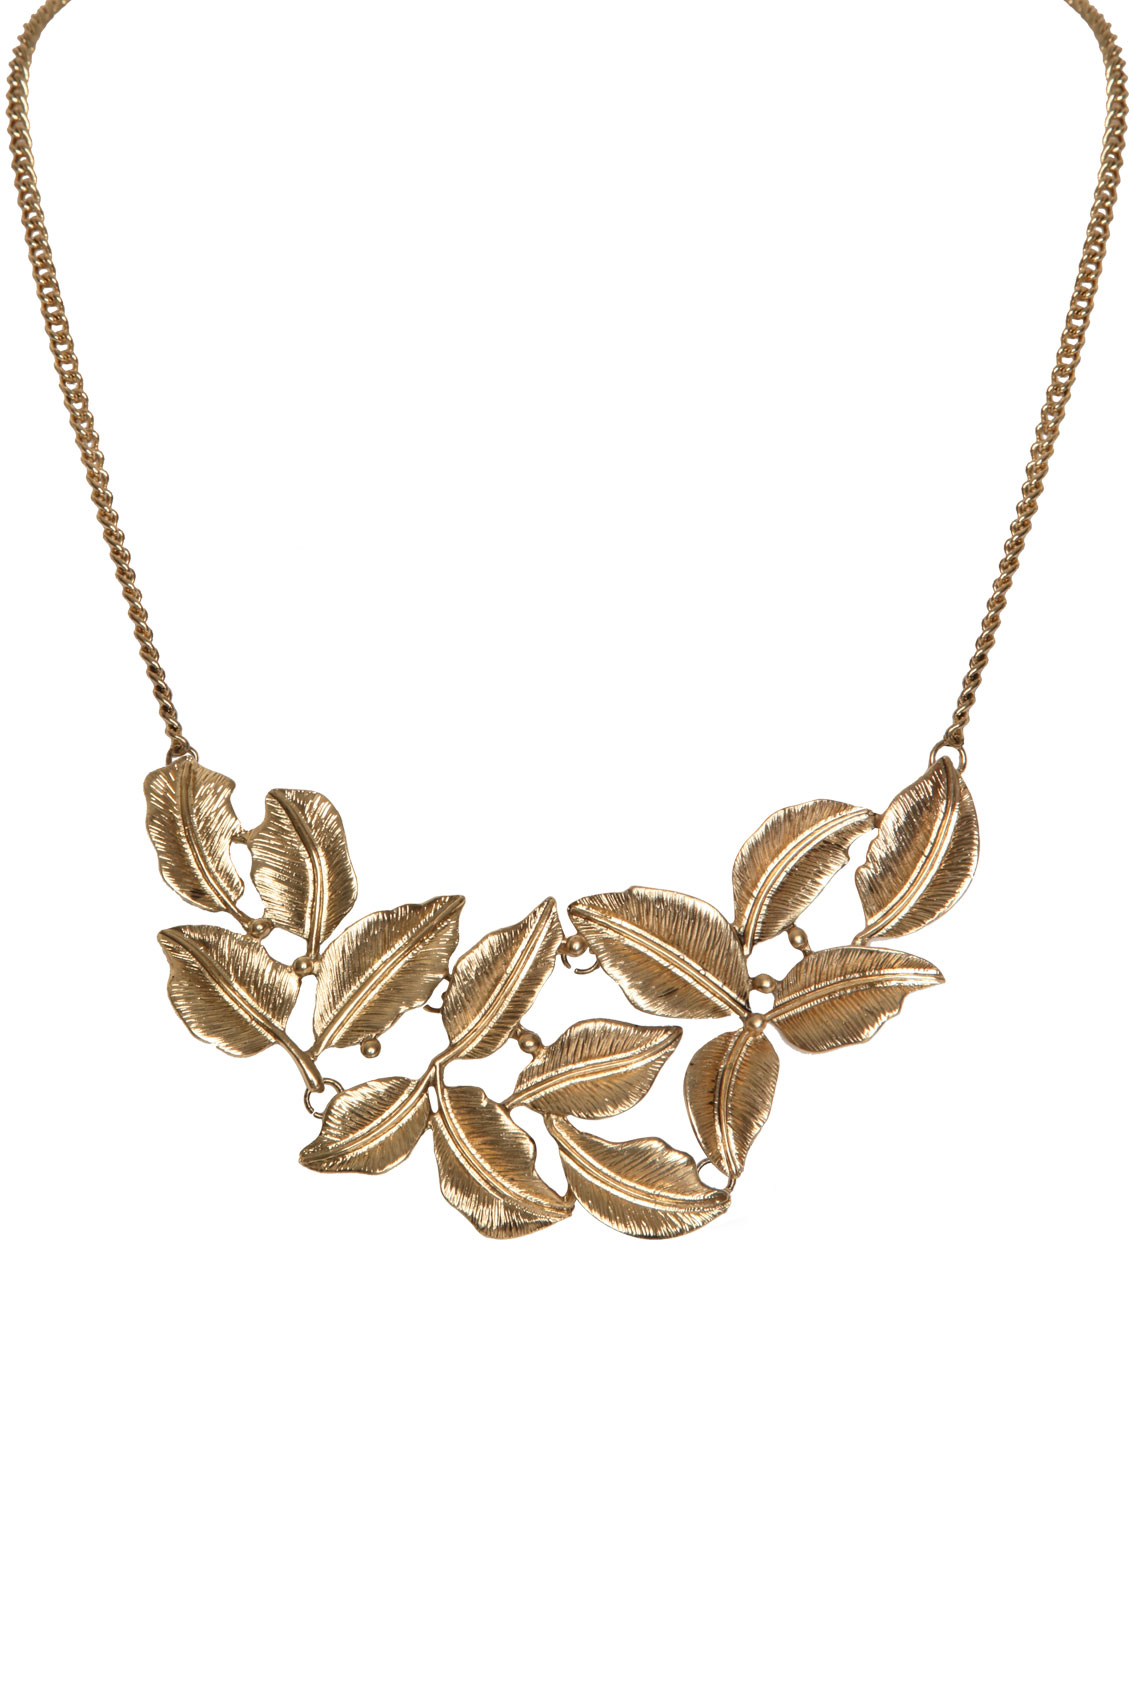 Gold Antique Style Leaf Necklace